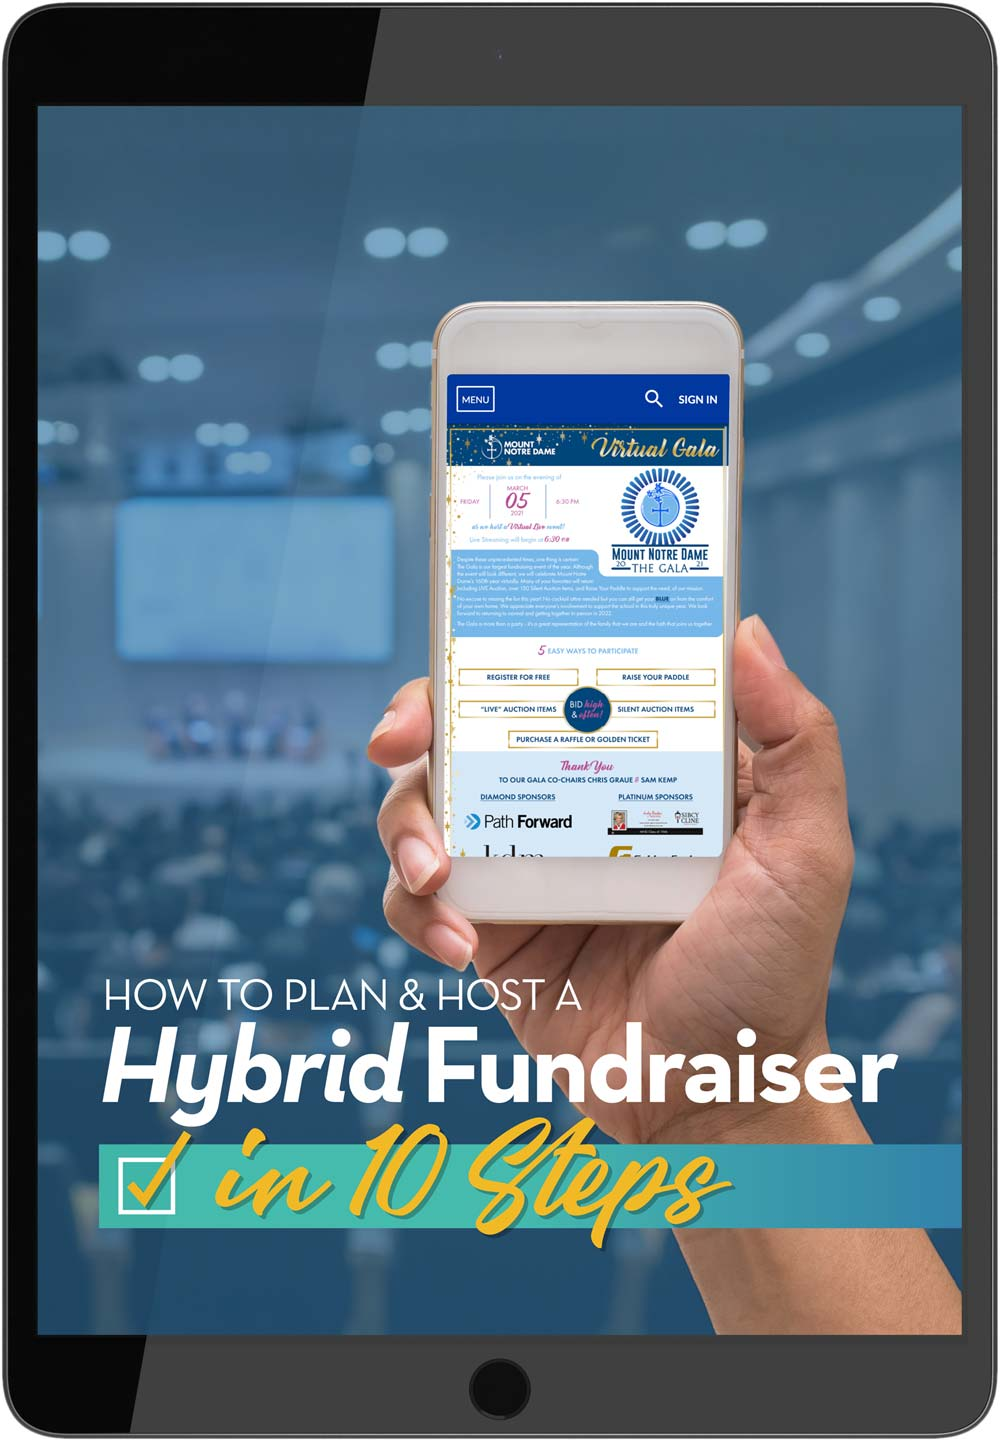 How-to-Plan-and-Host-a-Hybrid-Fundraiser-in-10-Steps-iPad